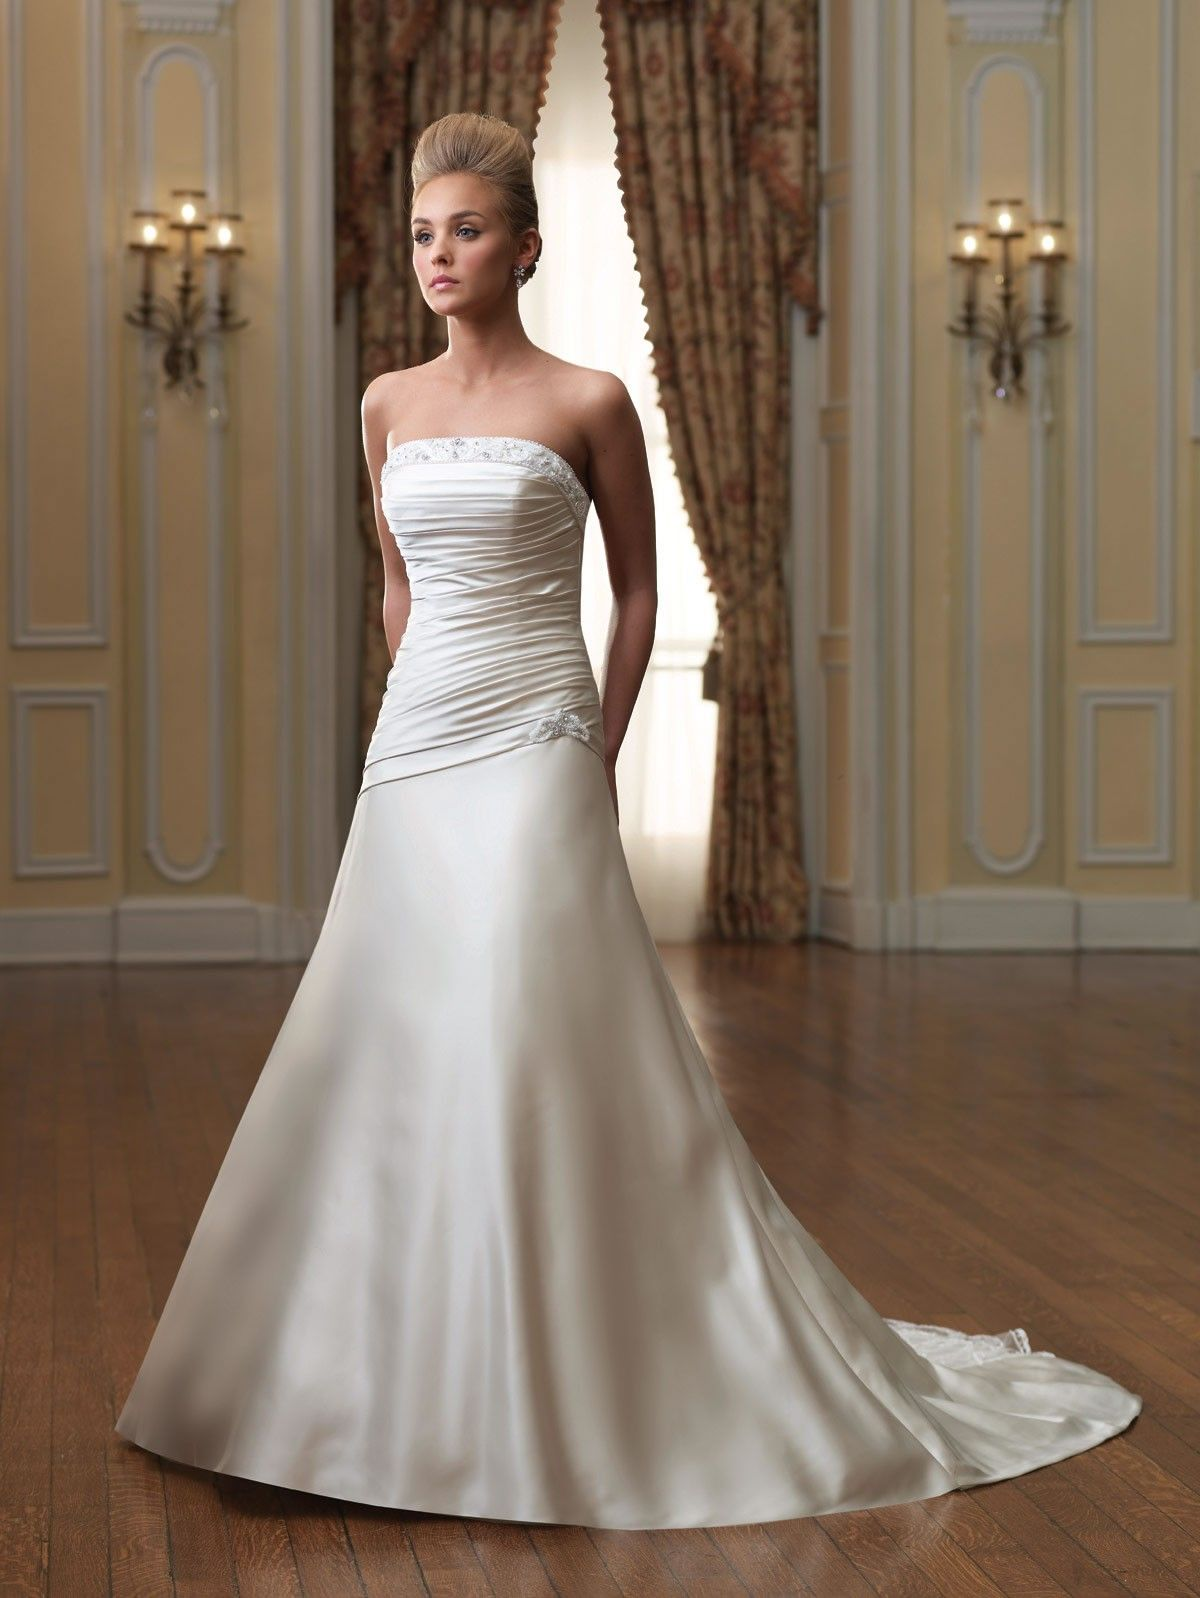 Strapless Wedding Dresses With A Line Dresscab Beautiful